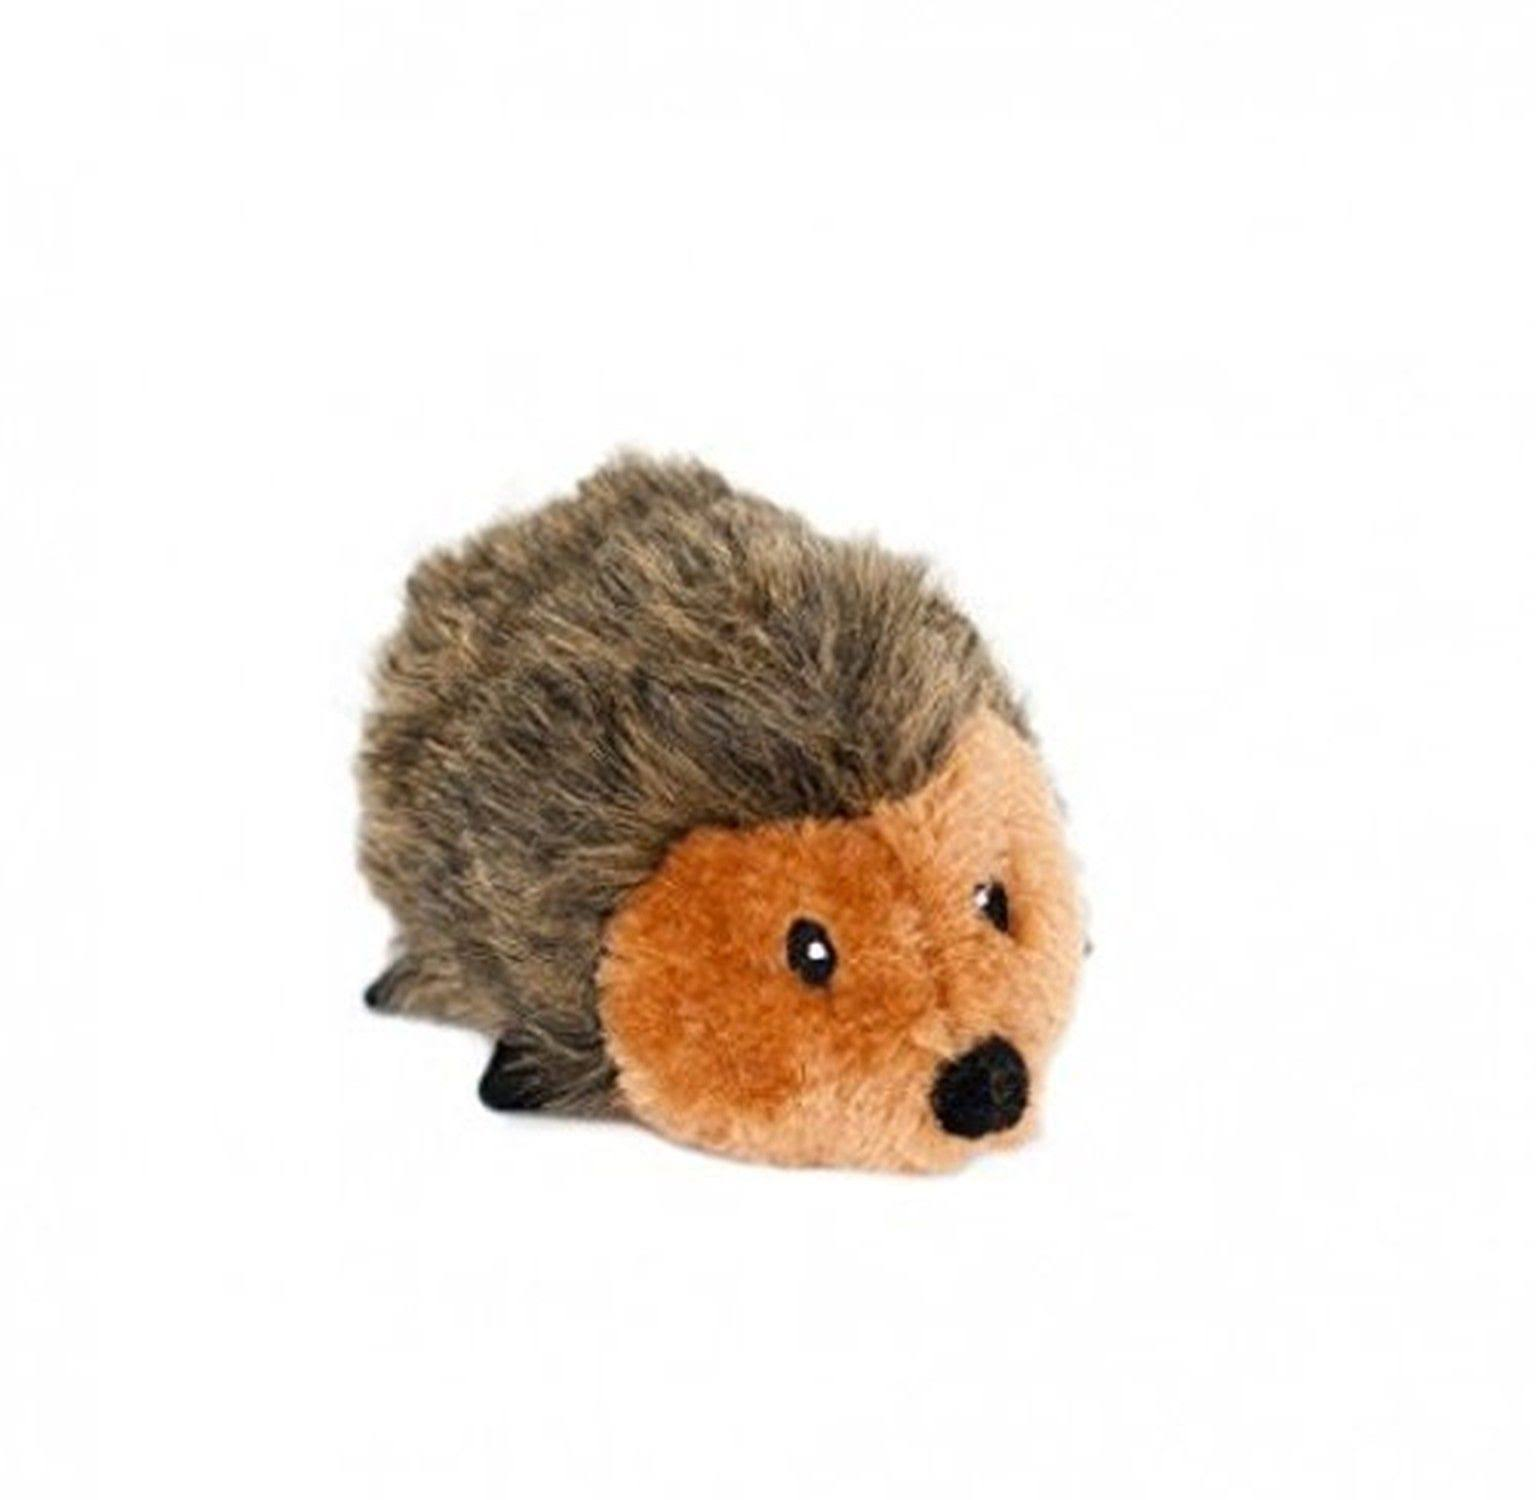 ZippyPaws Hedgehog Squeaky Plush Dog Toy - Small